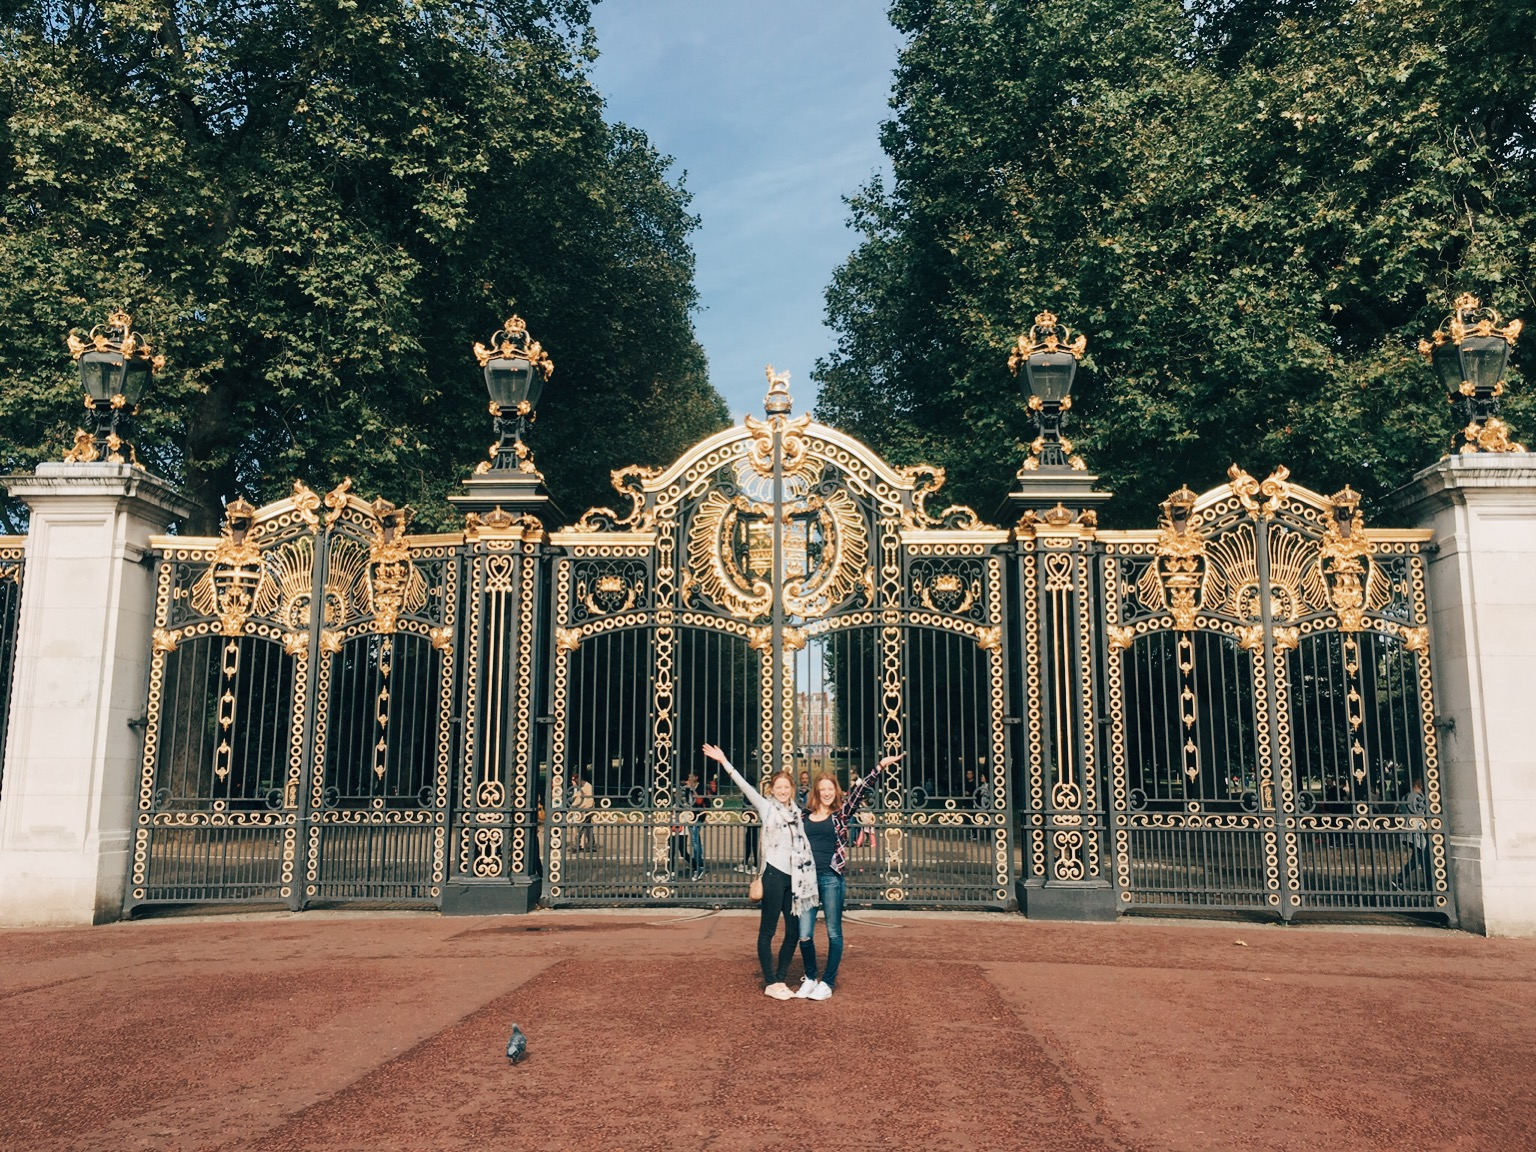 Tourists pose in front of Buckingham Palace in London